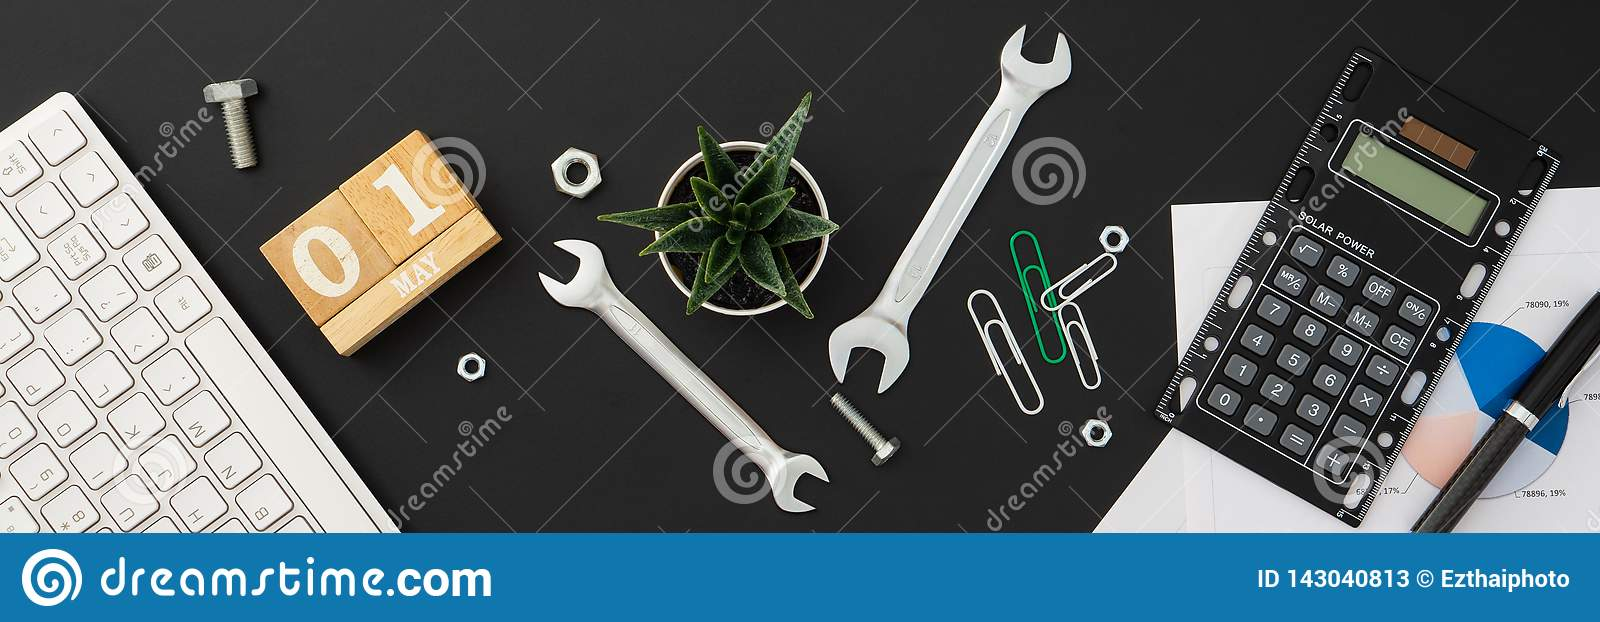 1st May International Labour Day Web Banner background concept. Office or home table desk stylish work space Flat lay Top view